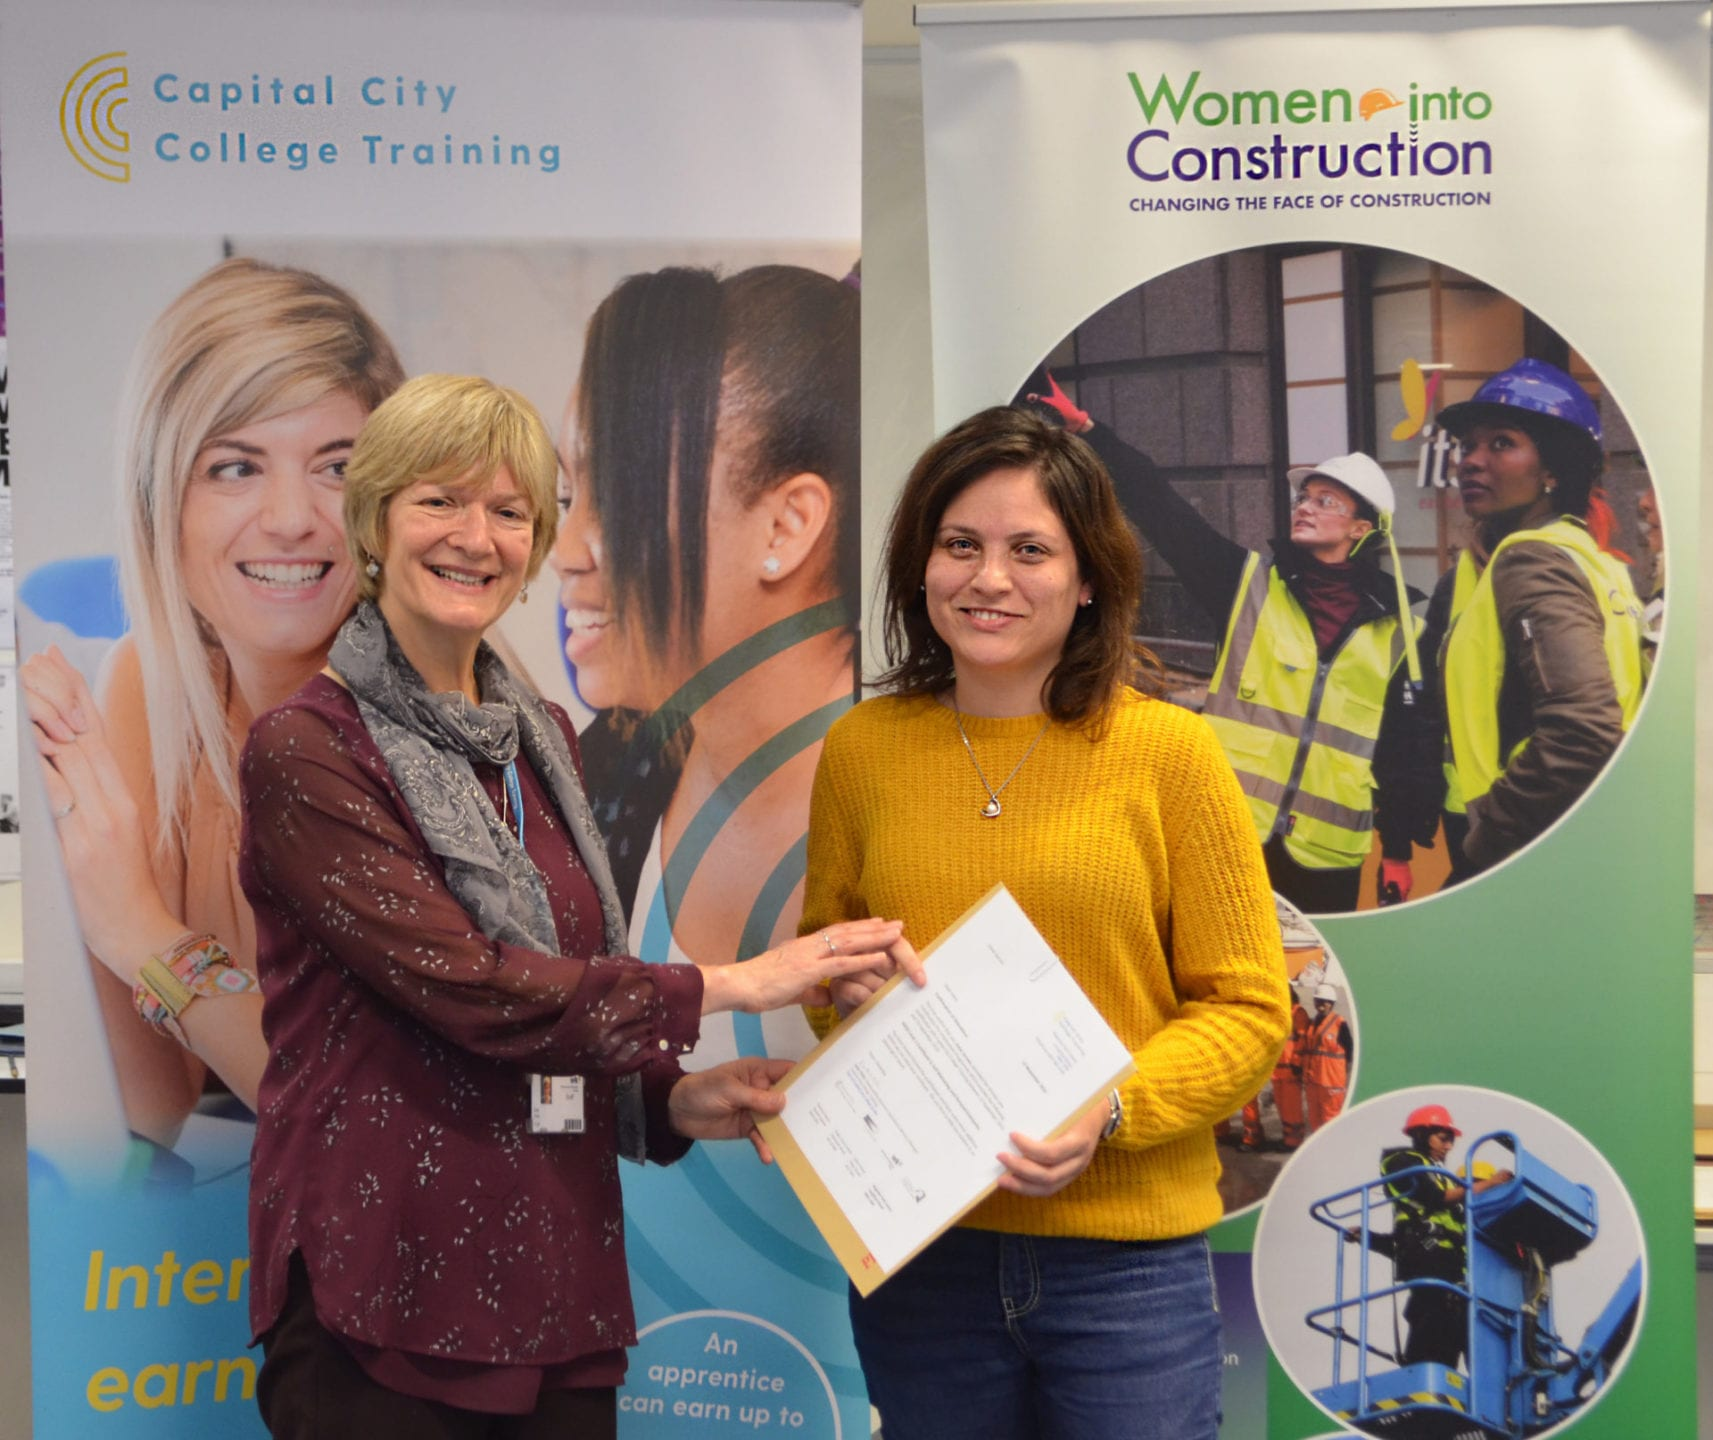 A graduate of the Women into Construction programme receives her completion certificate from Kate Child, Business Operations Manager at Capital City College Training